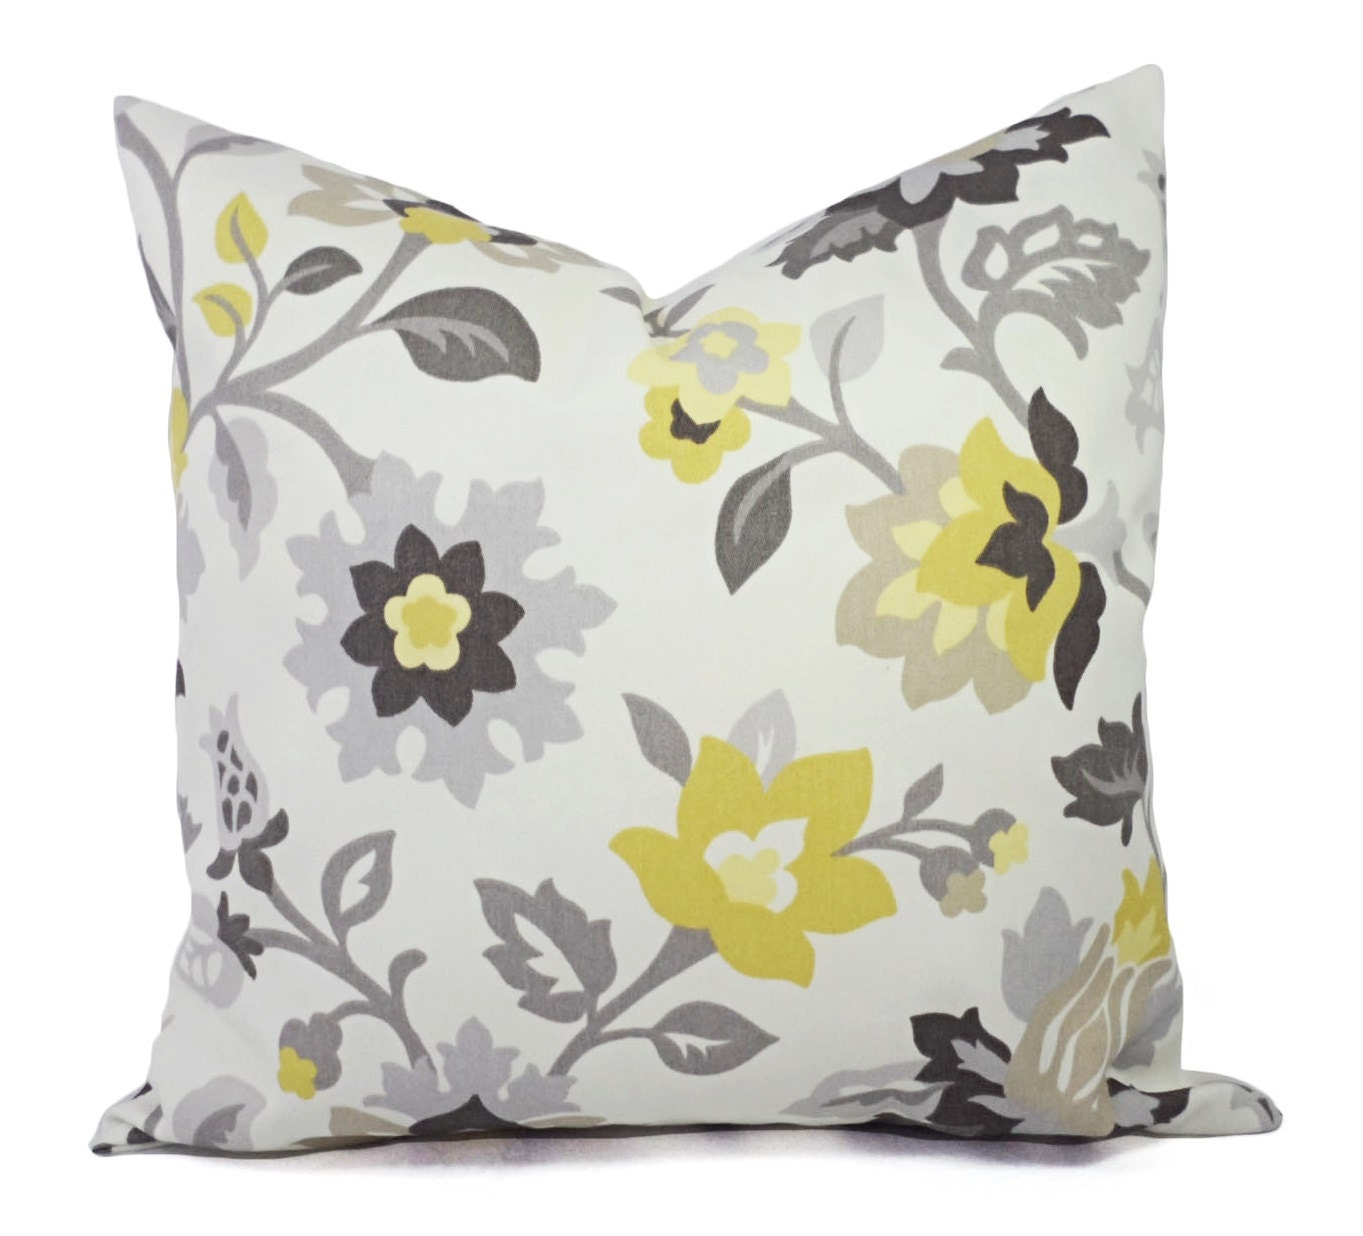 Throw Pillows Groupon : Two Decorative Pillows Yellow and Grey Pillow Covers